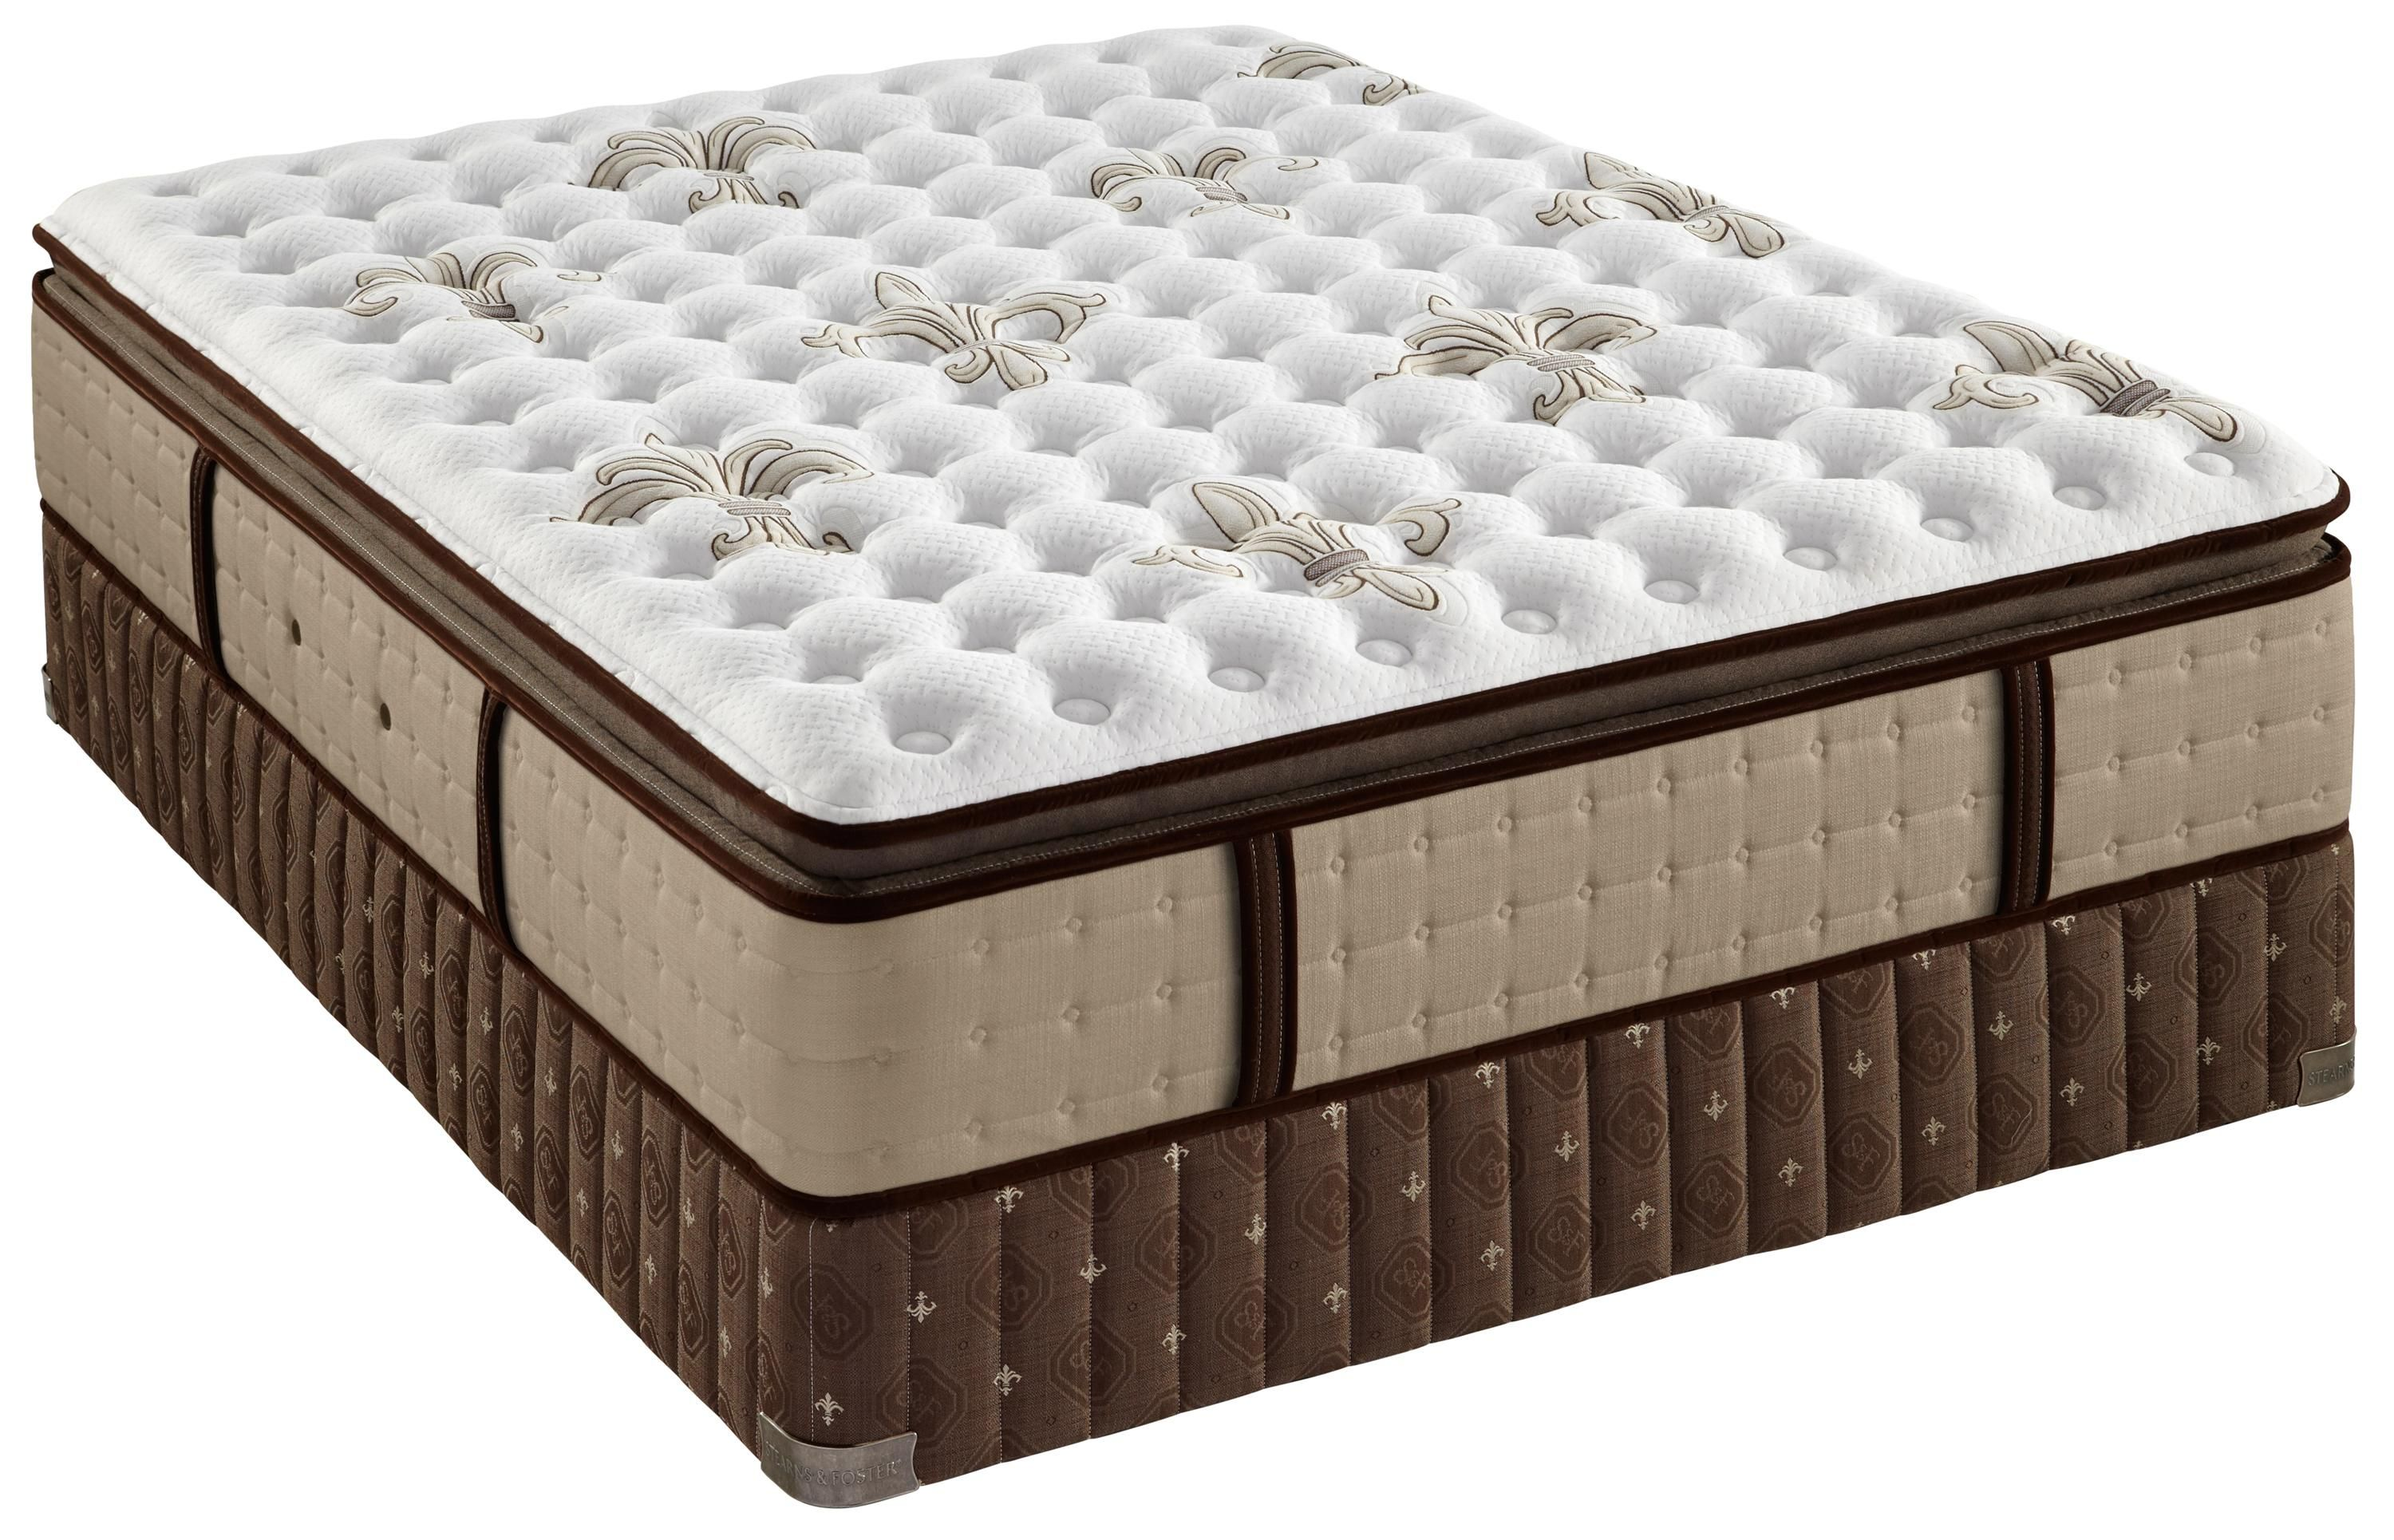 e2 luxury firm euro pillow top queen firm euro pillow top mattress